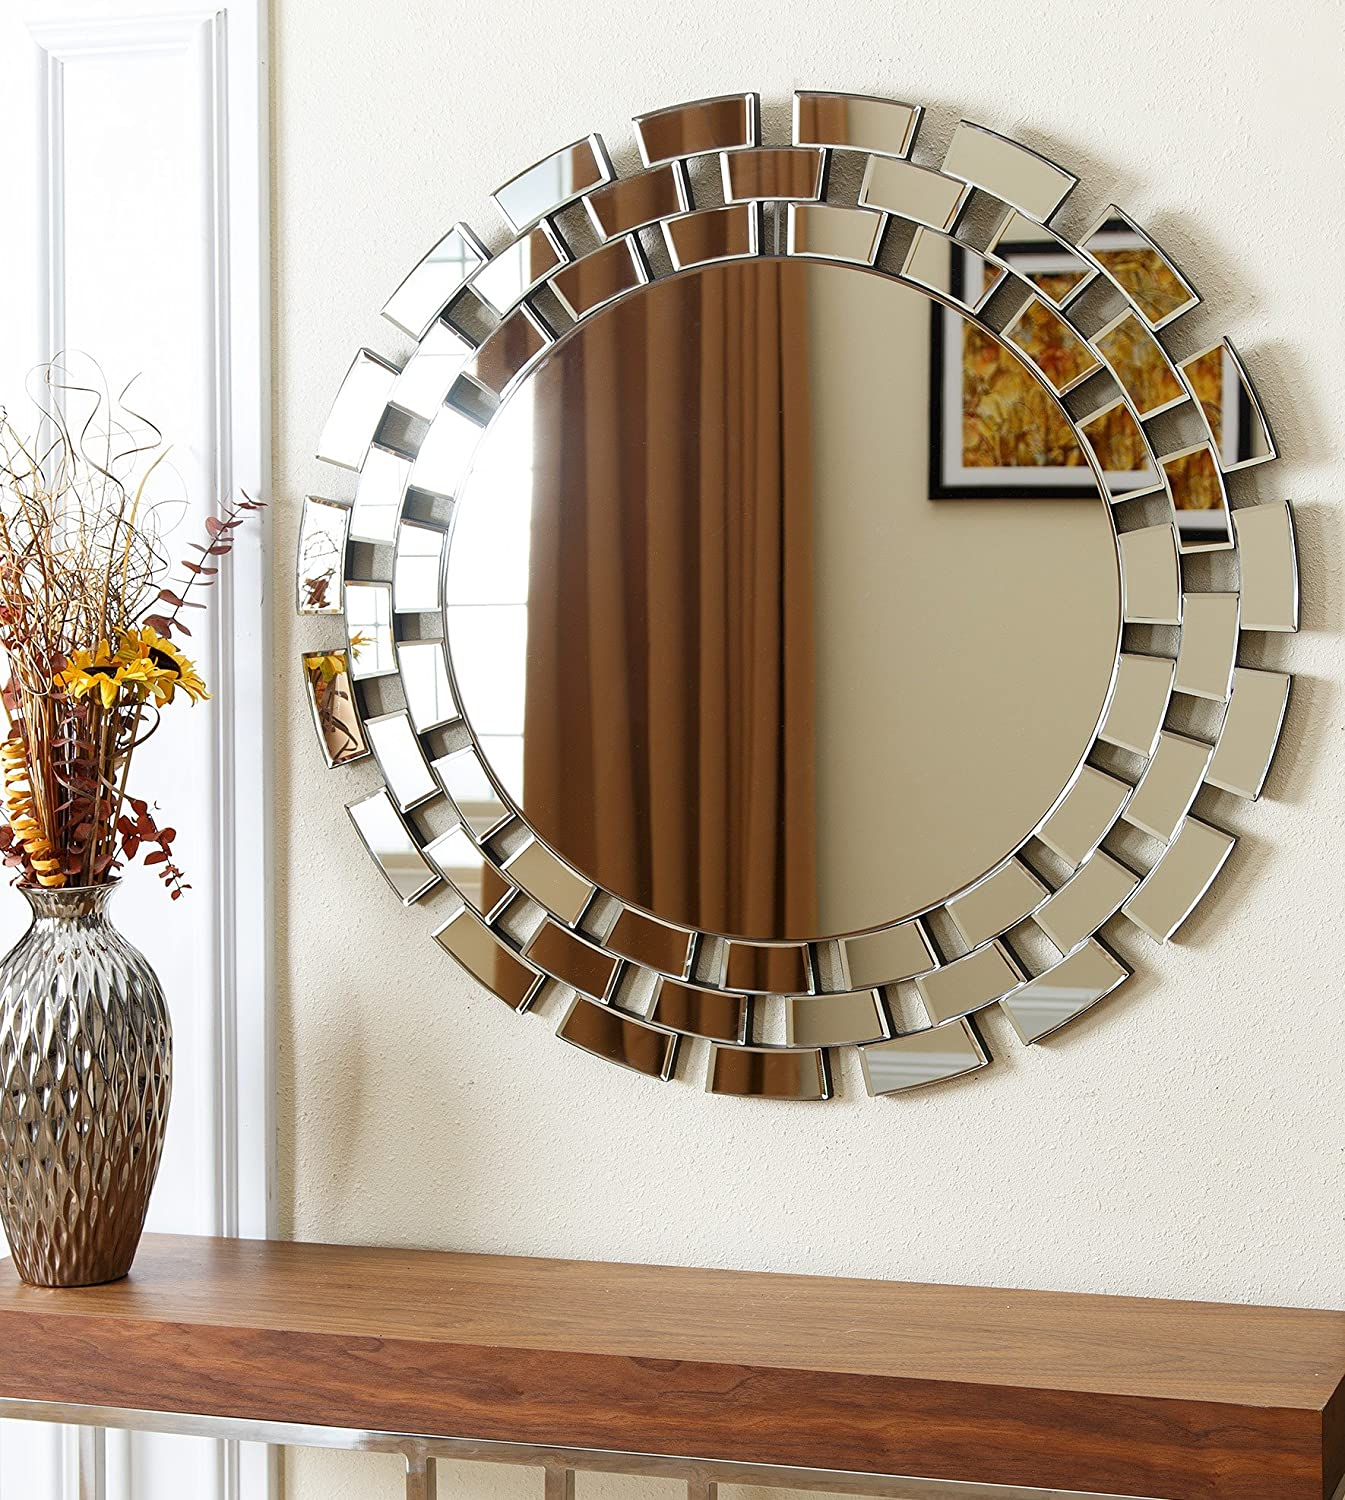 Amazon.com: Abbyson Zen Round Wall Mirror: Home & Kitchen